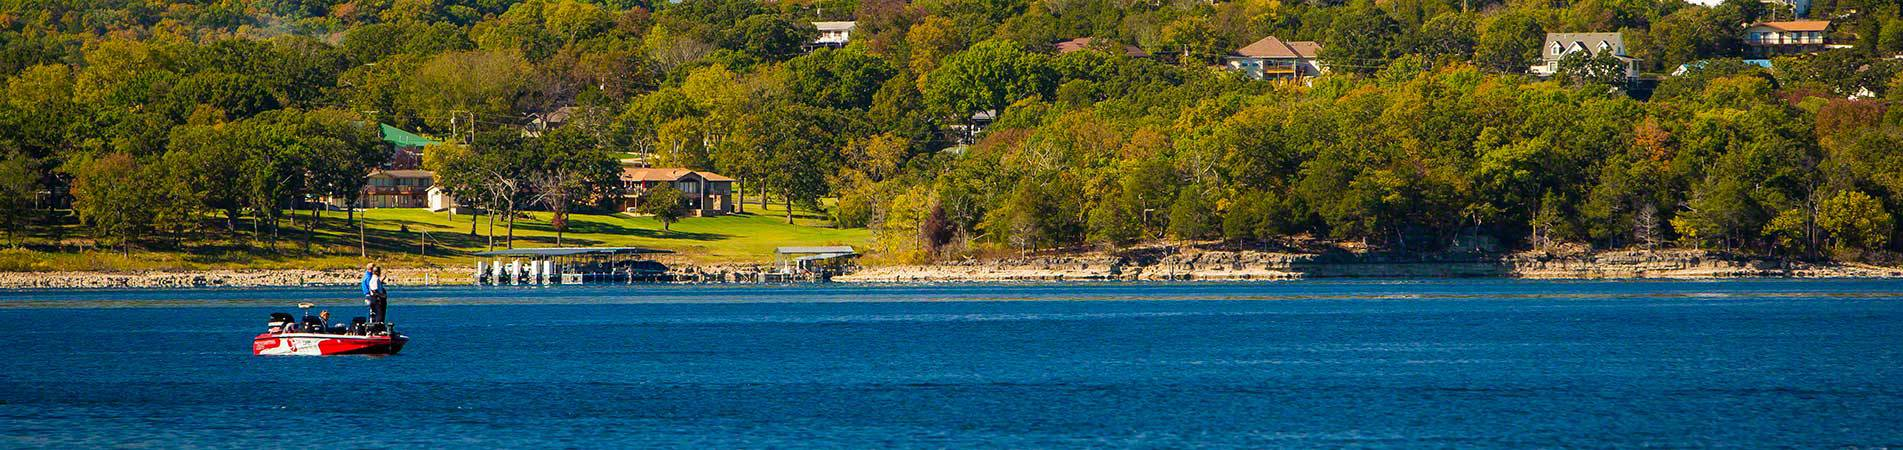 A distant view of our vacation rentals in Branson, MO shot from across the lake.